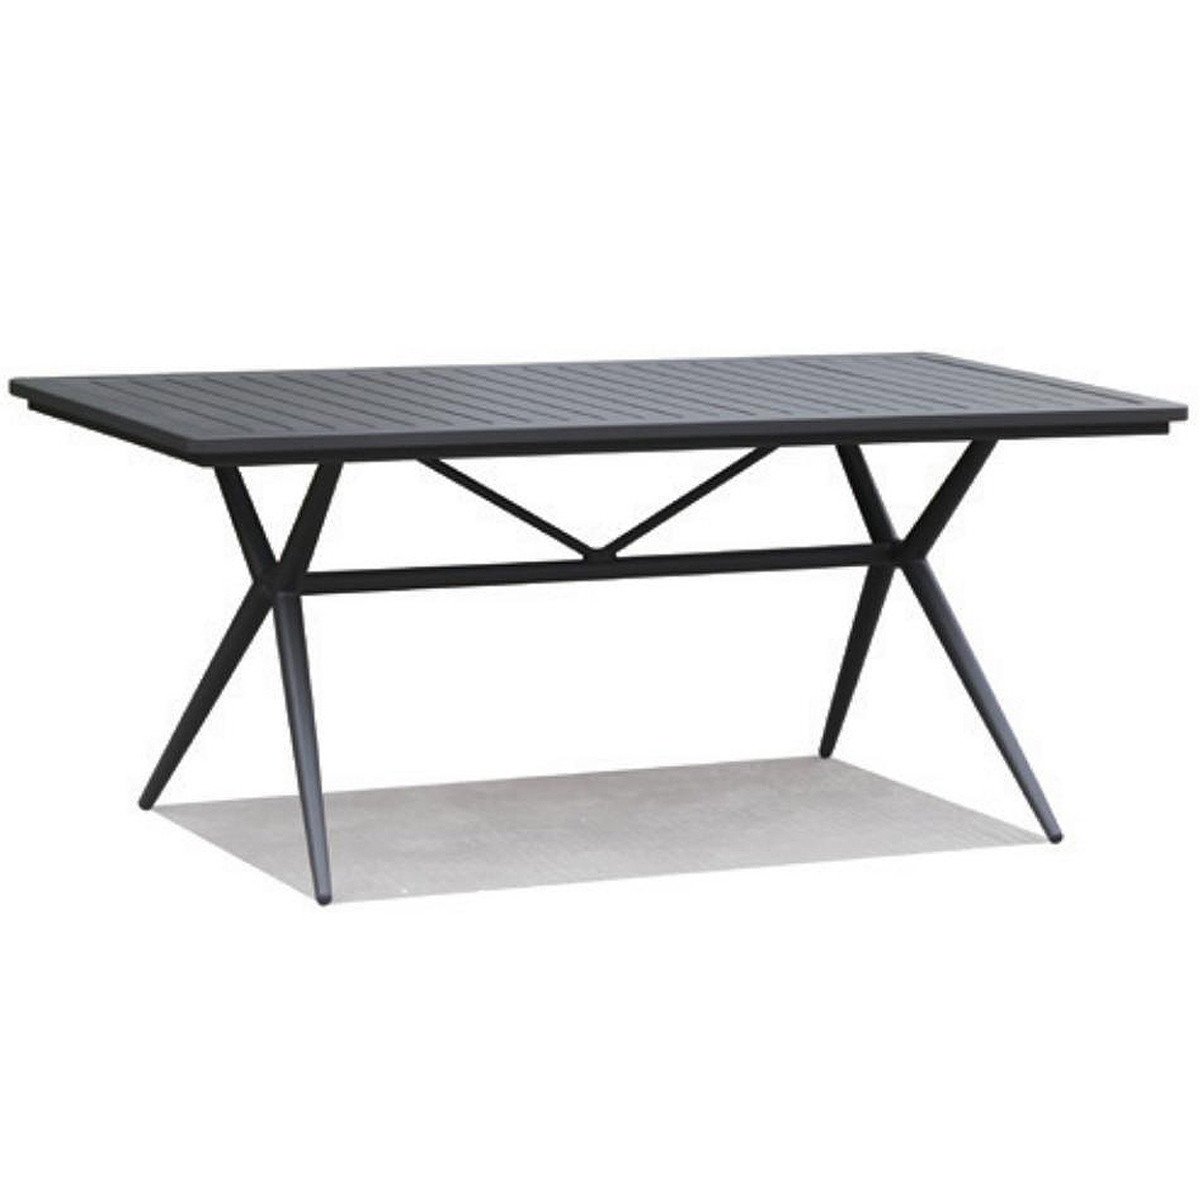 Outdoor Dining table for 6